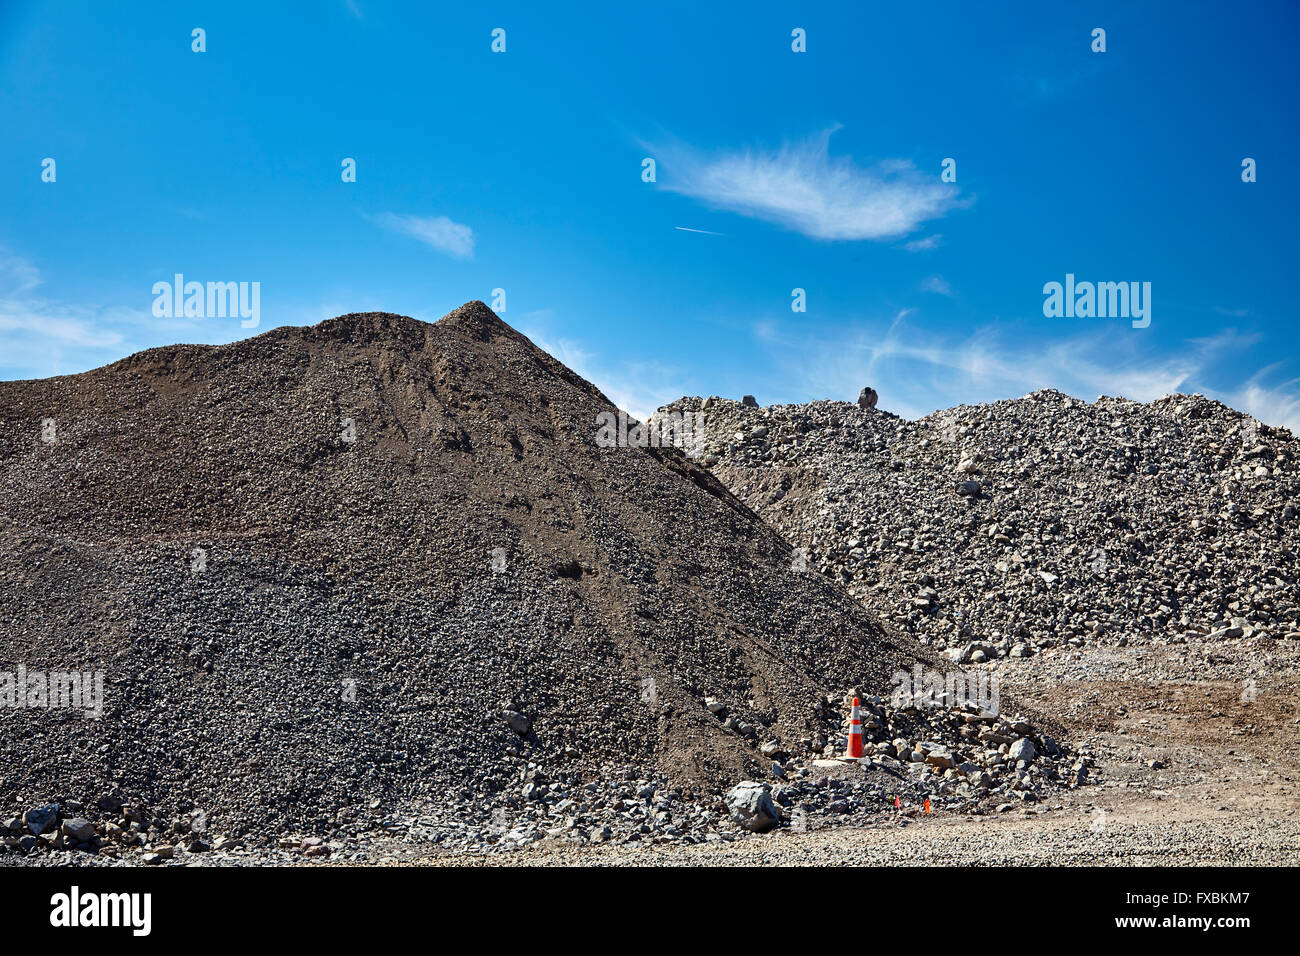 construction jobsite excavation grading gravel and rock piles for sitework - Stock Image